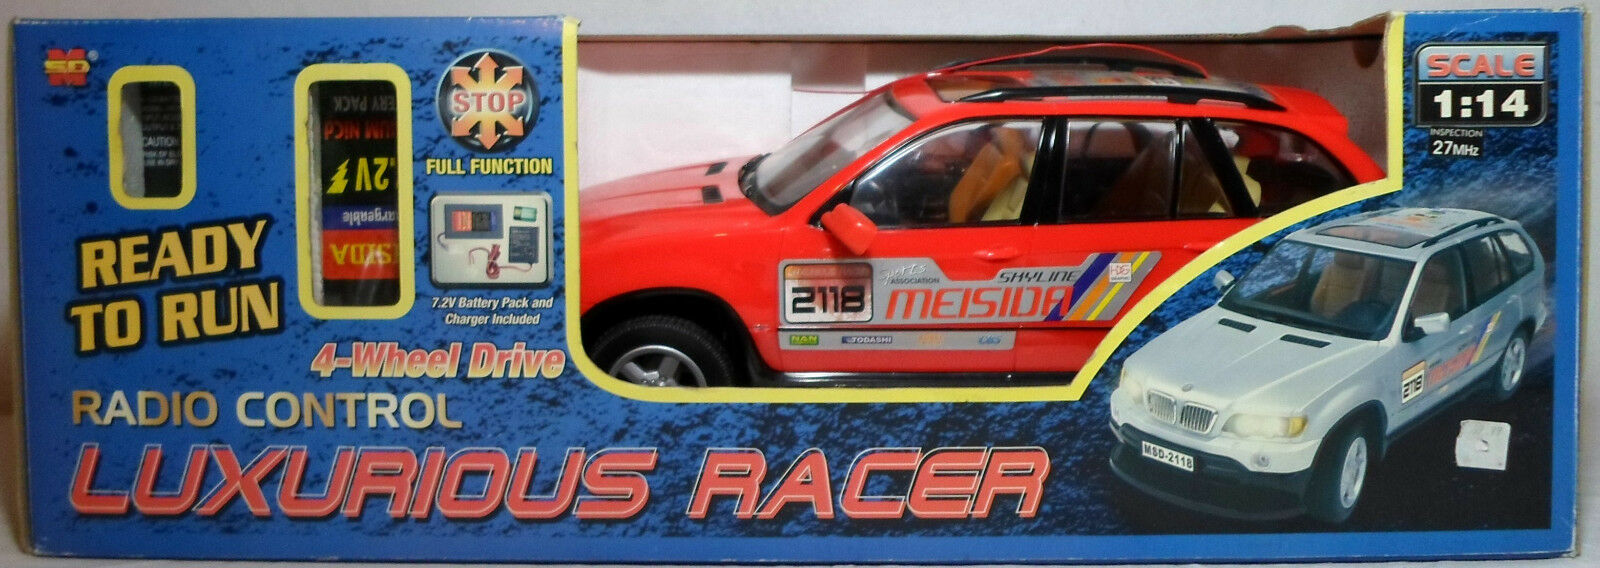 MSD VTG 90's LUXURIOUS RACER 4WD 1:14 13'' 27 Mhz R/C MIB WORKING HTF RARE NEW